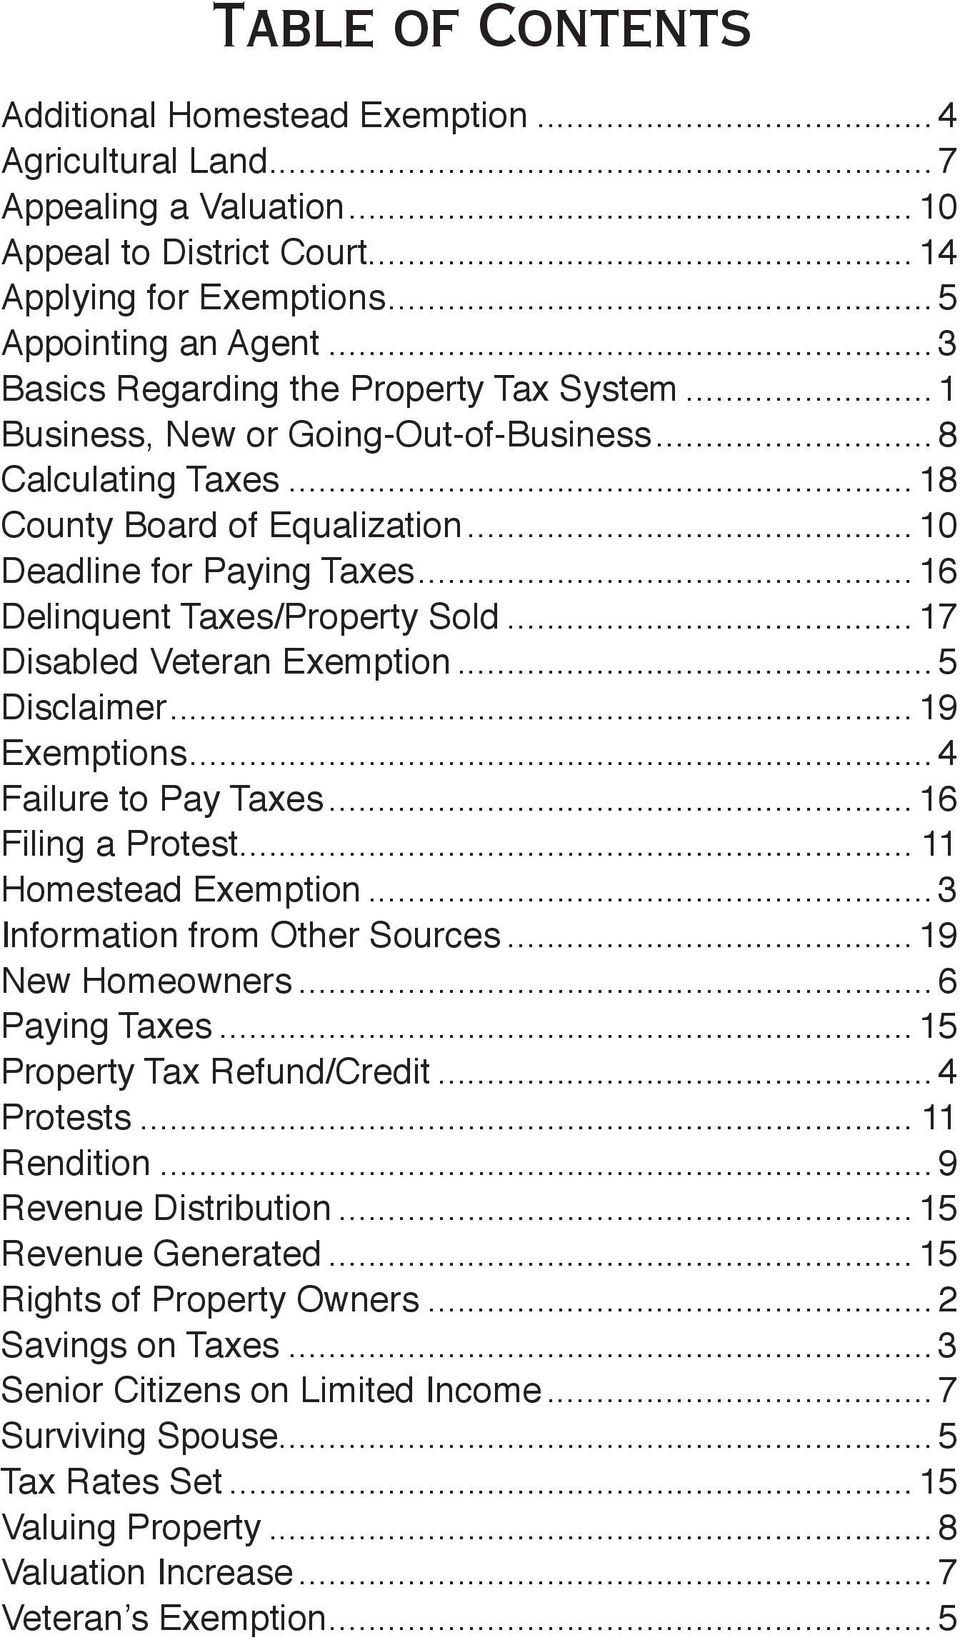 .. 16 Delinquent Taxes/Property Sold... 17 Disabled Veteran Exemption... 5 Disclaimer... 19 Exemptions... 4 Failure to Pay Taxes... 16 Filing a Protest... 11 Homestead Exemption.